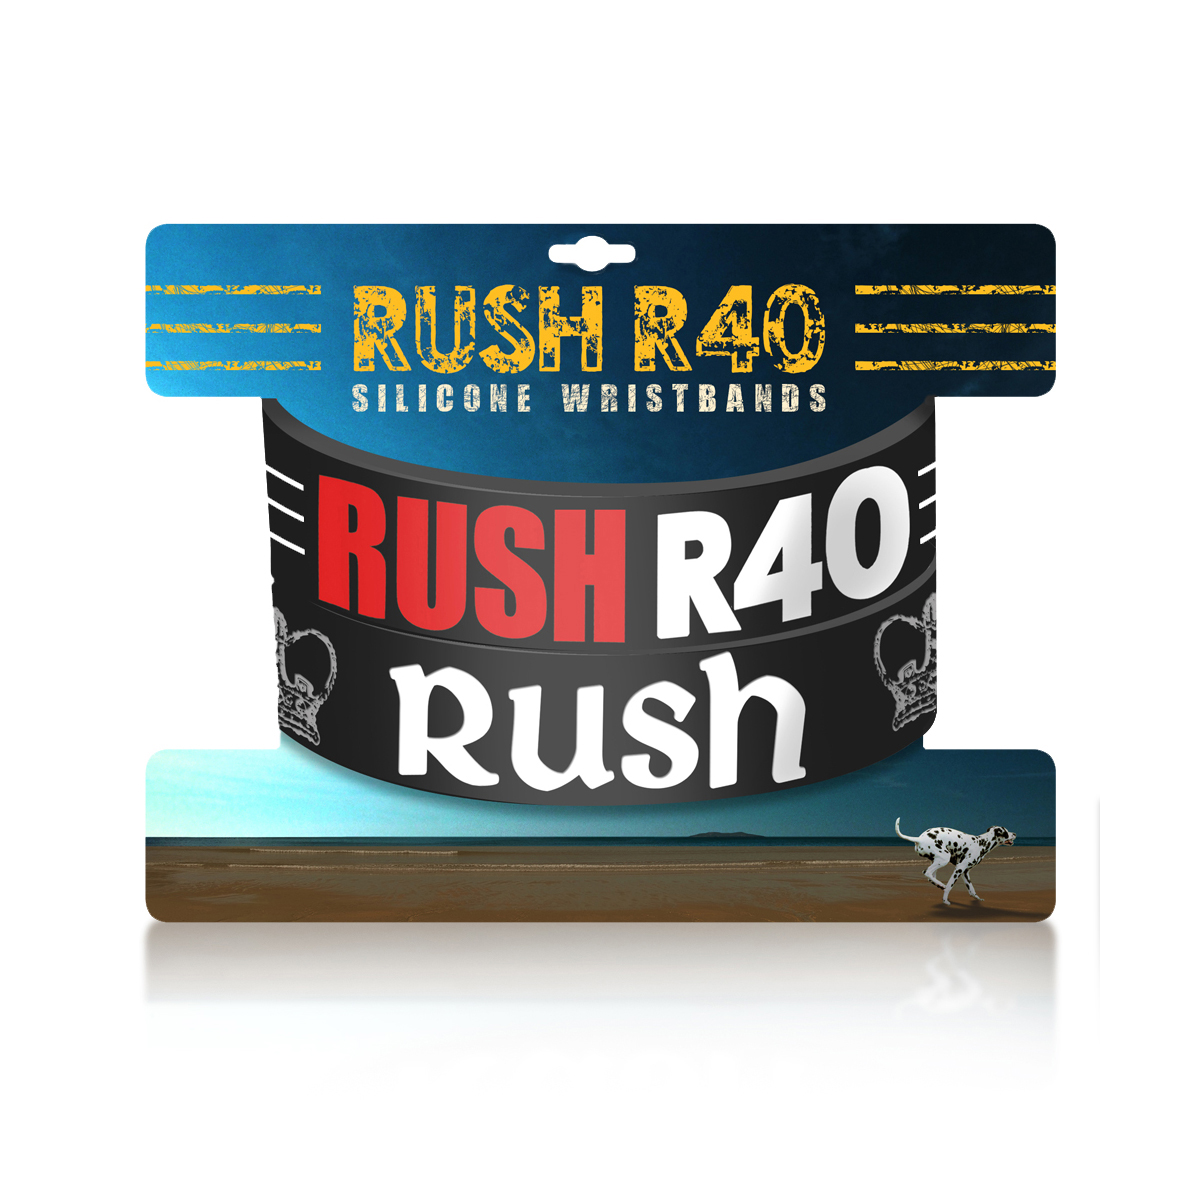 Rush R40 Wristbands